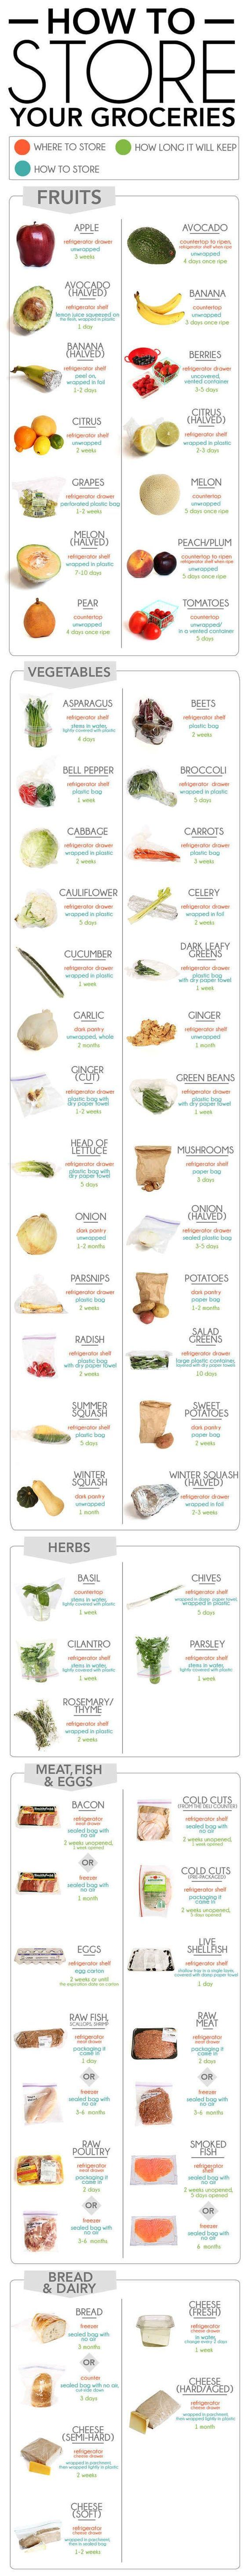 Here are several ways to store your groceries to keep them fresh. From fruits, vegetables, bread, dairy and herbs this guide will help you know how to keep them from spoiling and how long before you need to throw them out. Infographic Source